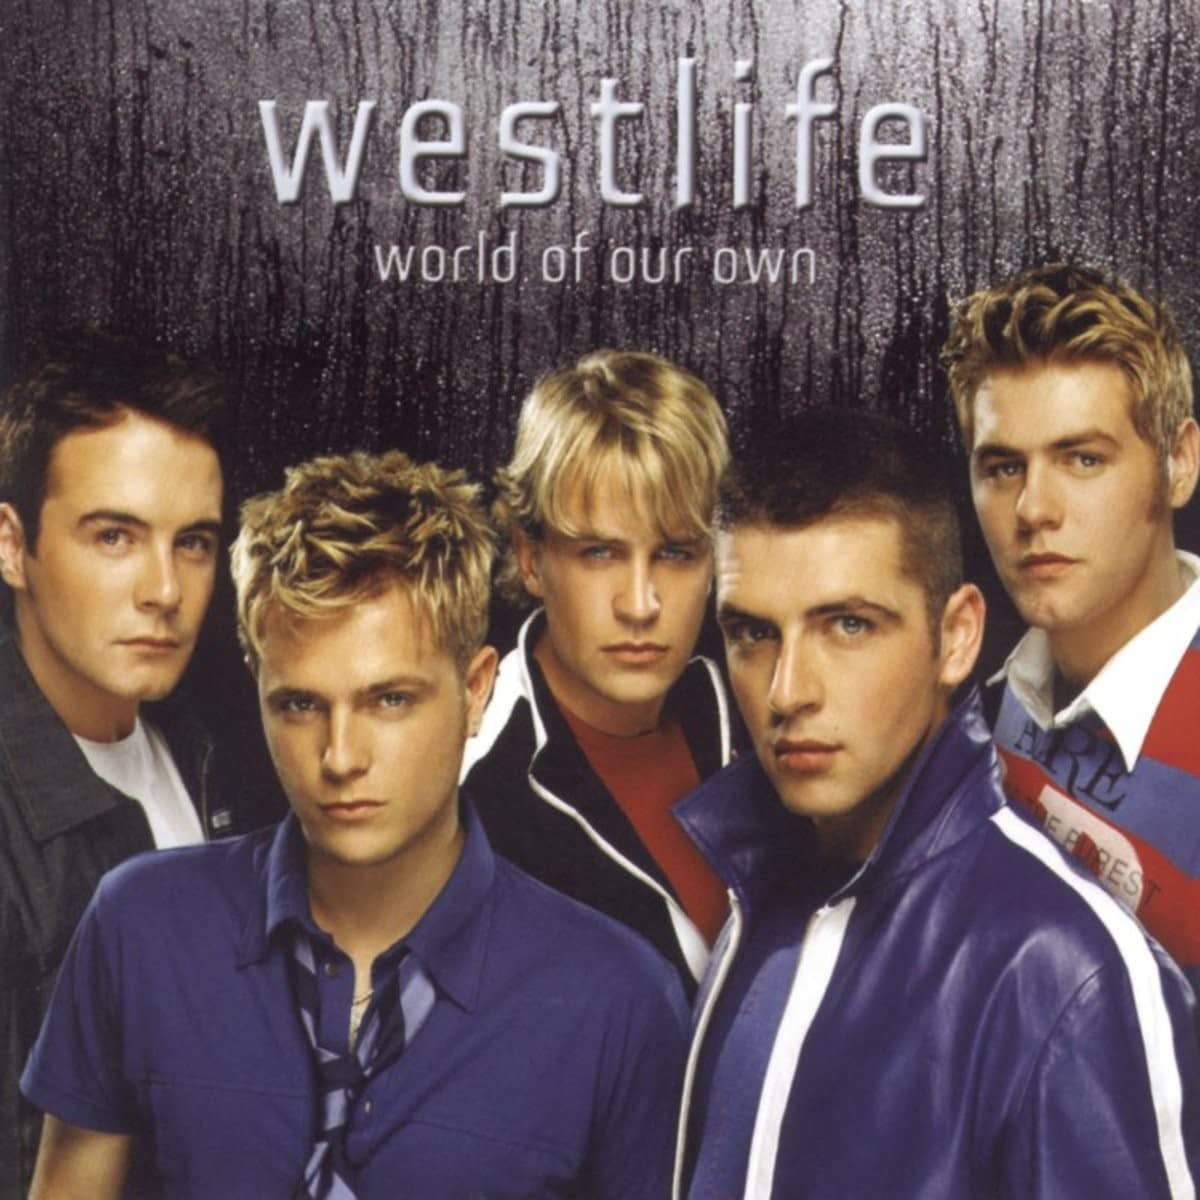 Westlife - I Wanna Grow Old With You